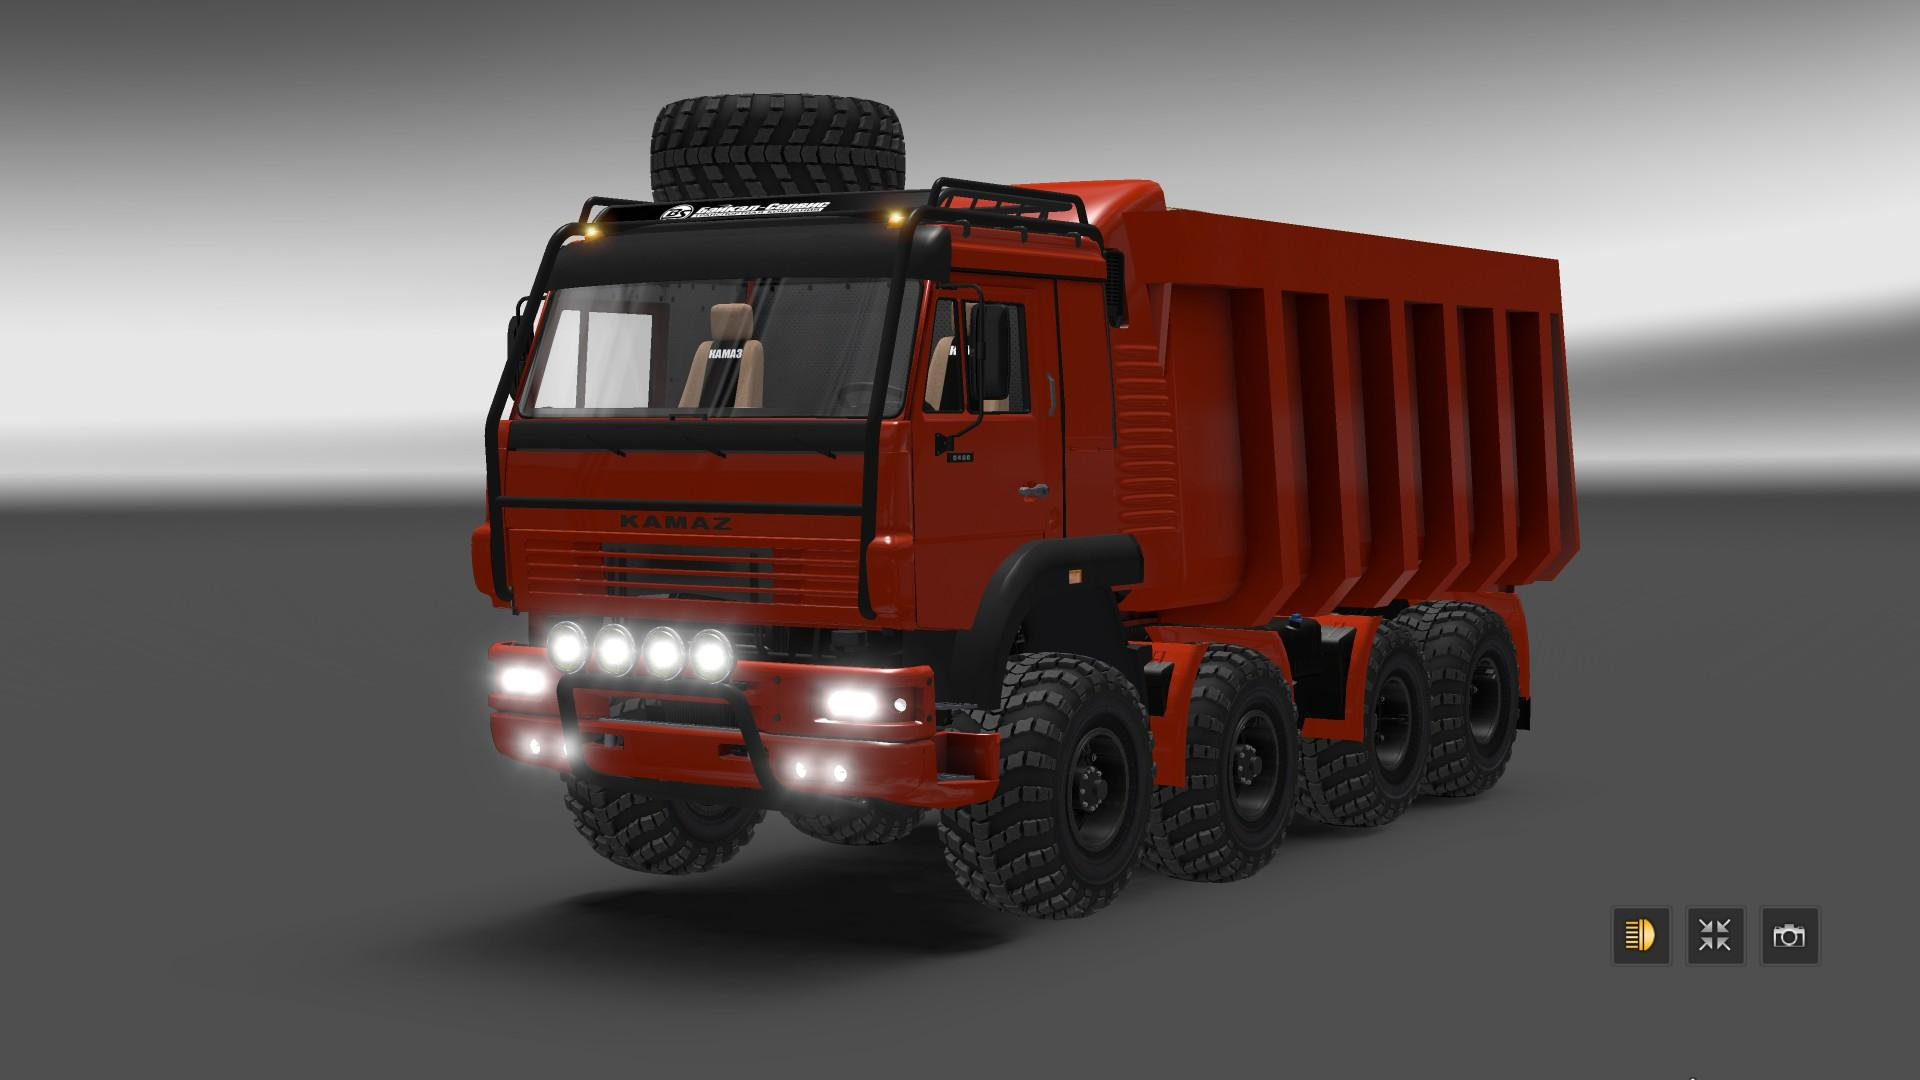 Euro truck simulator 2 mods daf xf 105 james s hislop pictures to pin - Kamaz 8x8 Monster Truck Update 12 03 V1 1